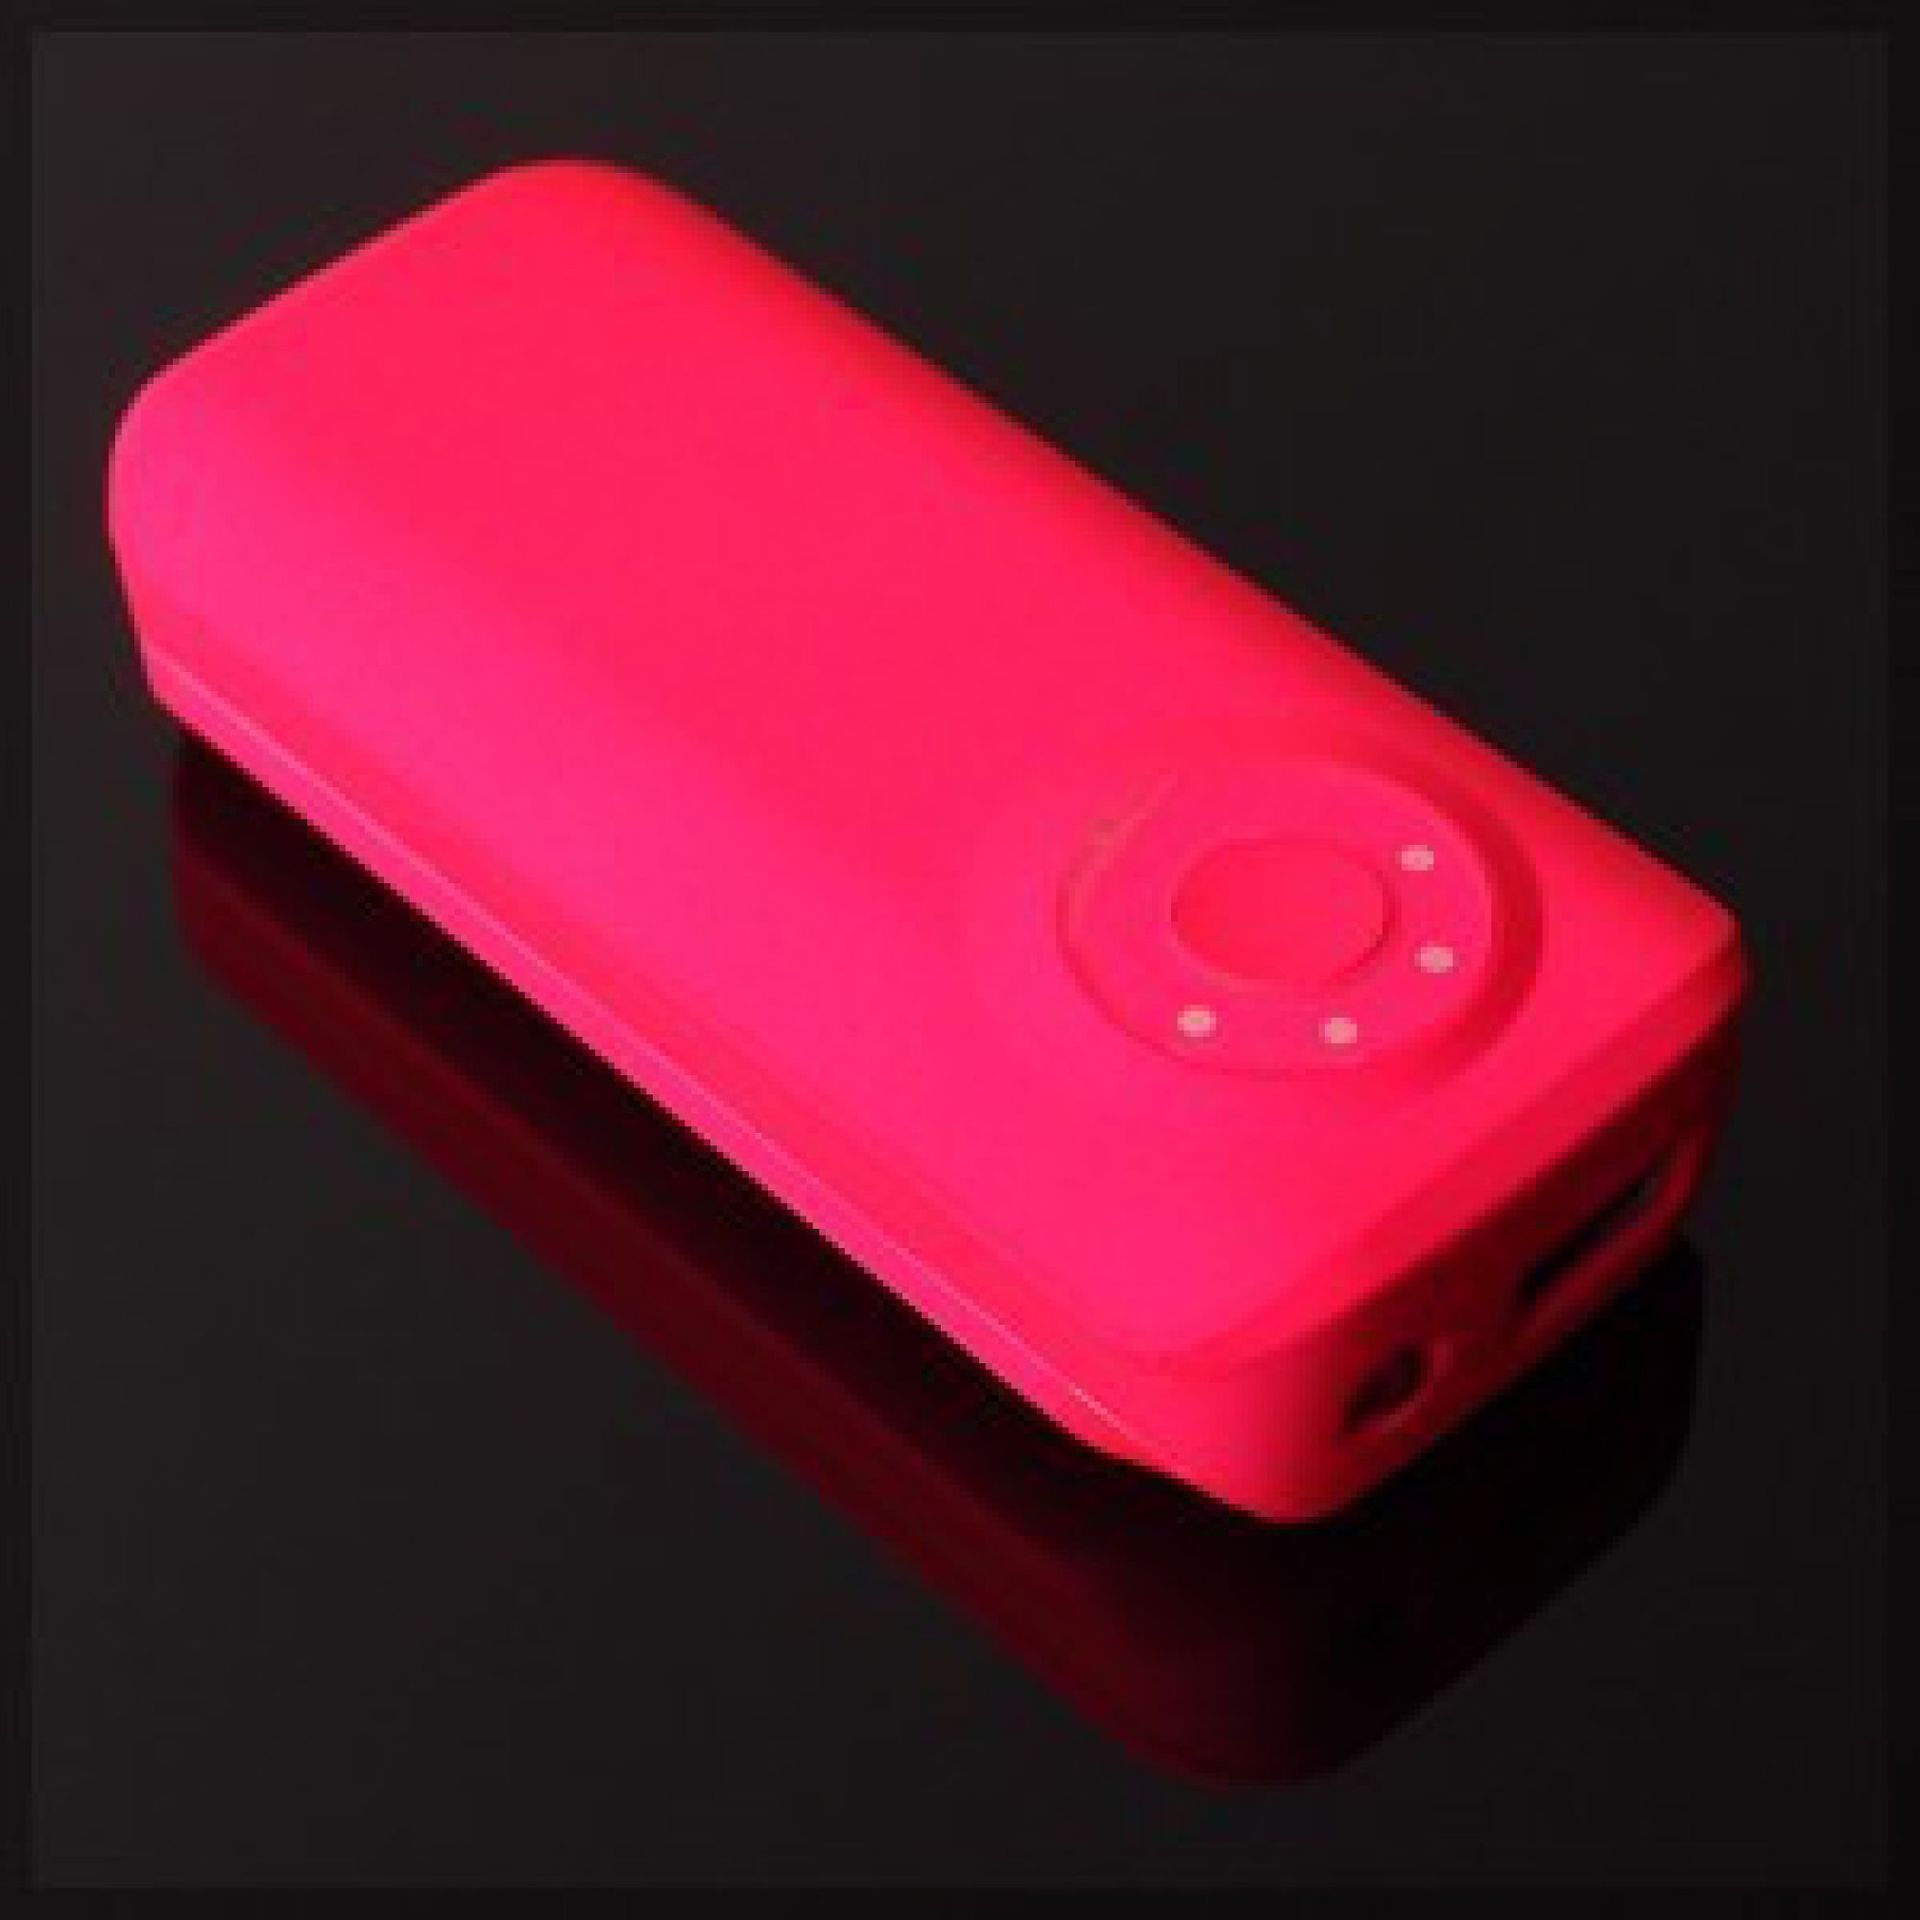 POWERBANK SUNEN E5600P